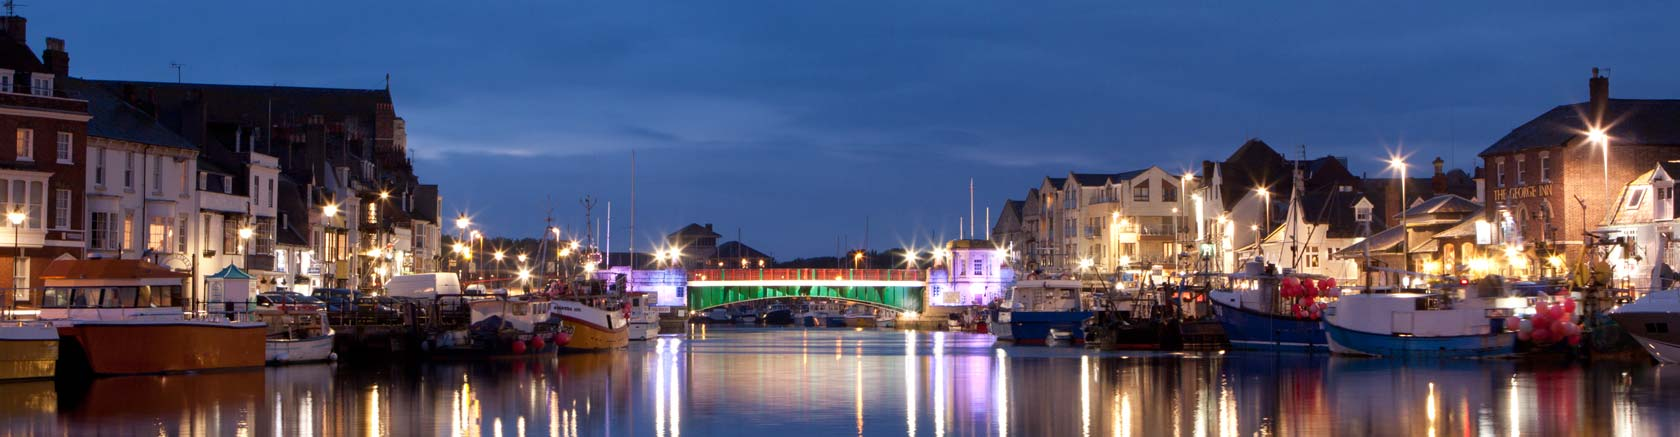 weymouth-bridge-at-night.jpg